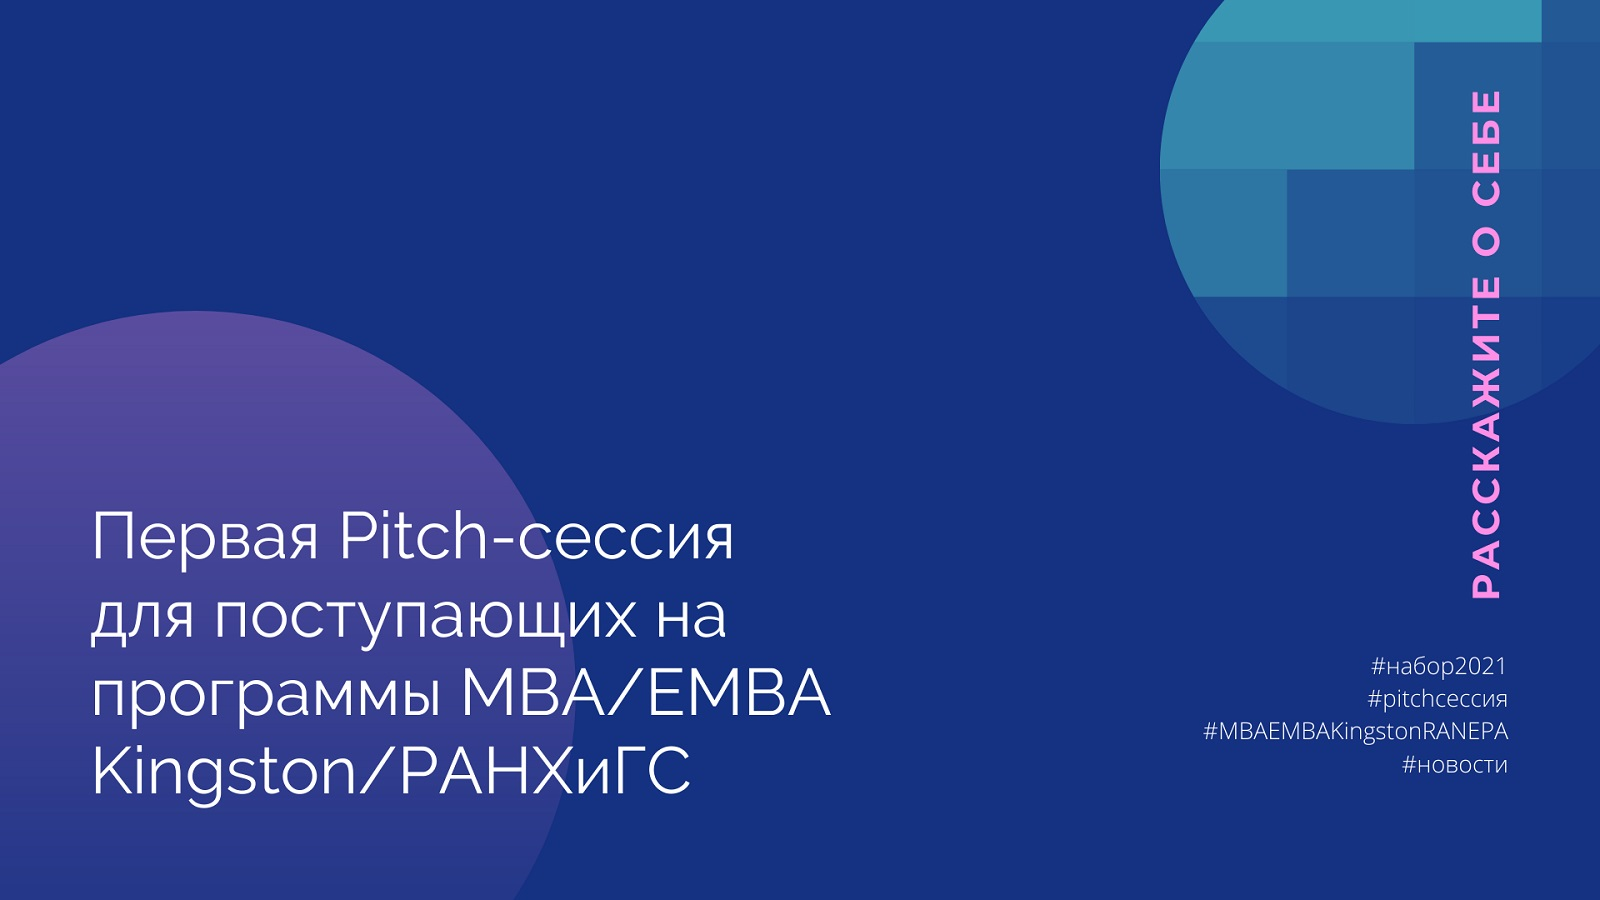 Первая Pitch-сессия Kingston/РАНХиГС